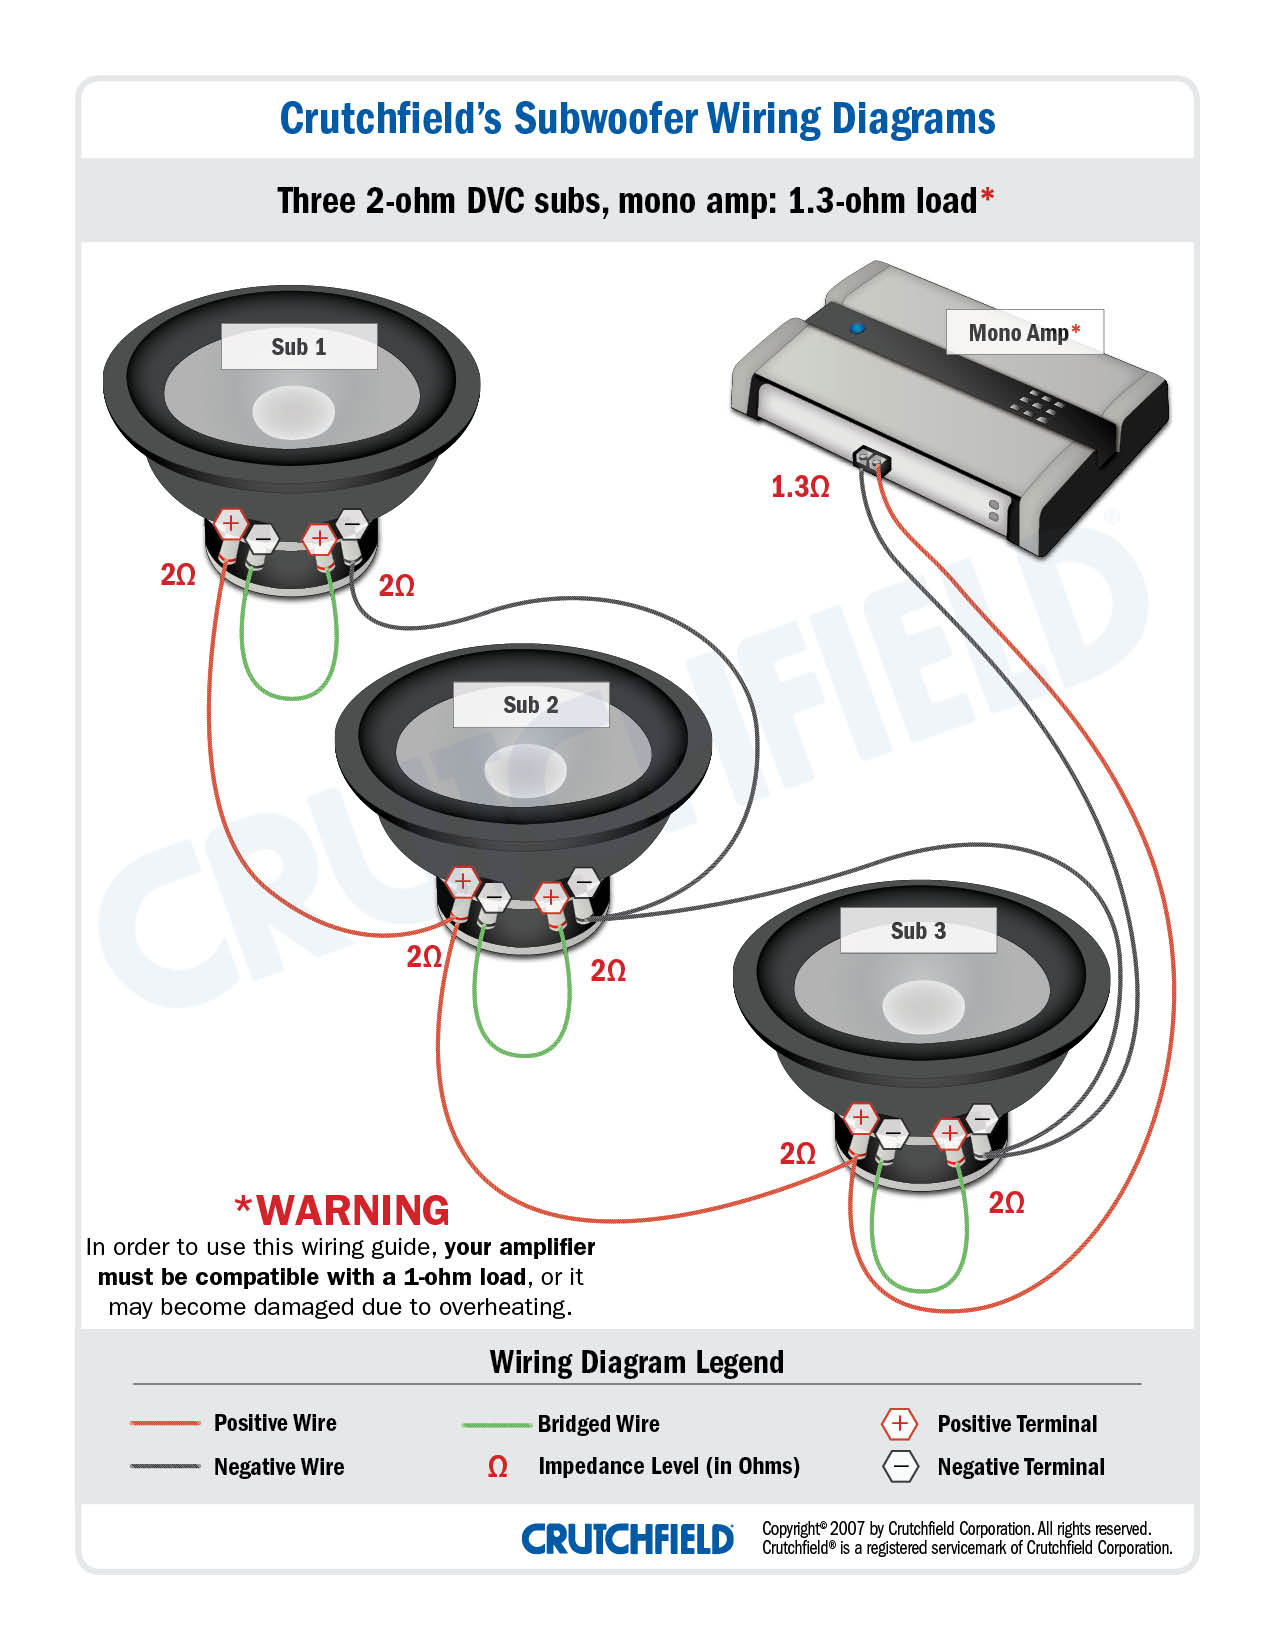 3 DVC 2 ohm mono low imp audi subwoofer wiring diagram audi wiring diagrams collection  at gsmx.co